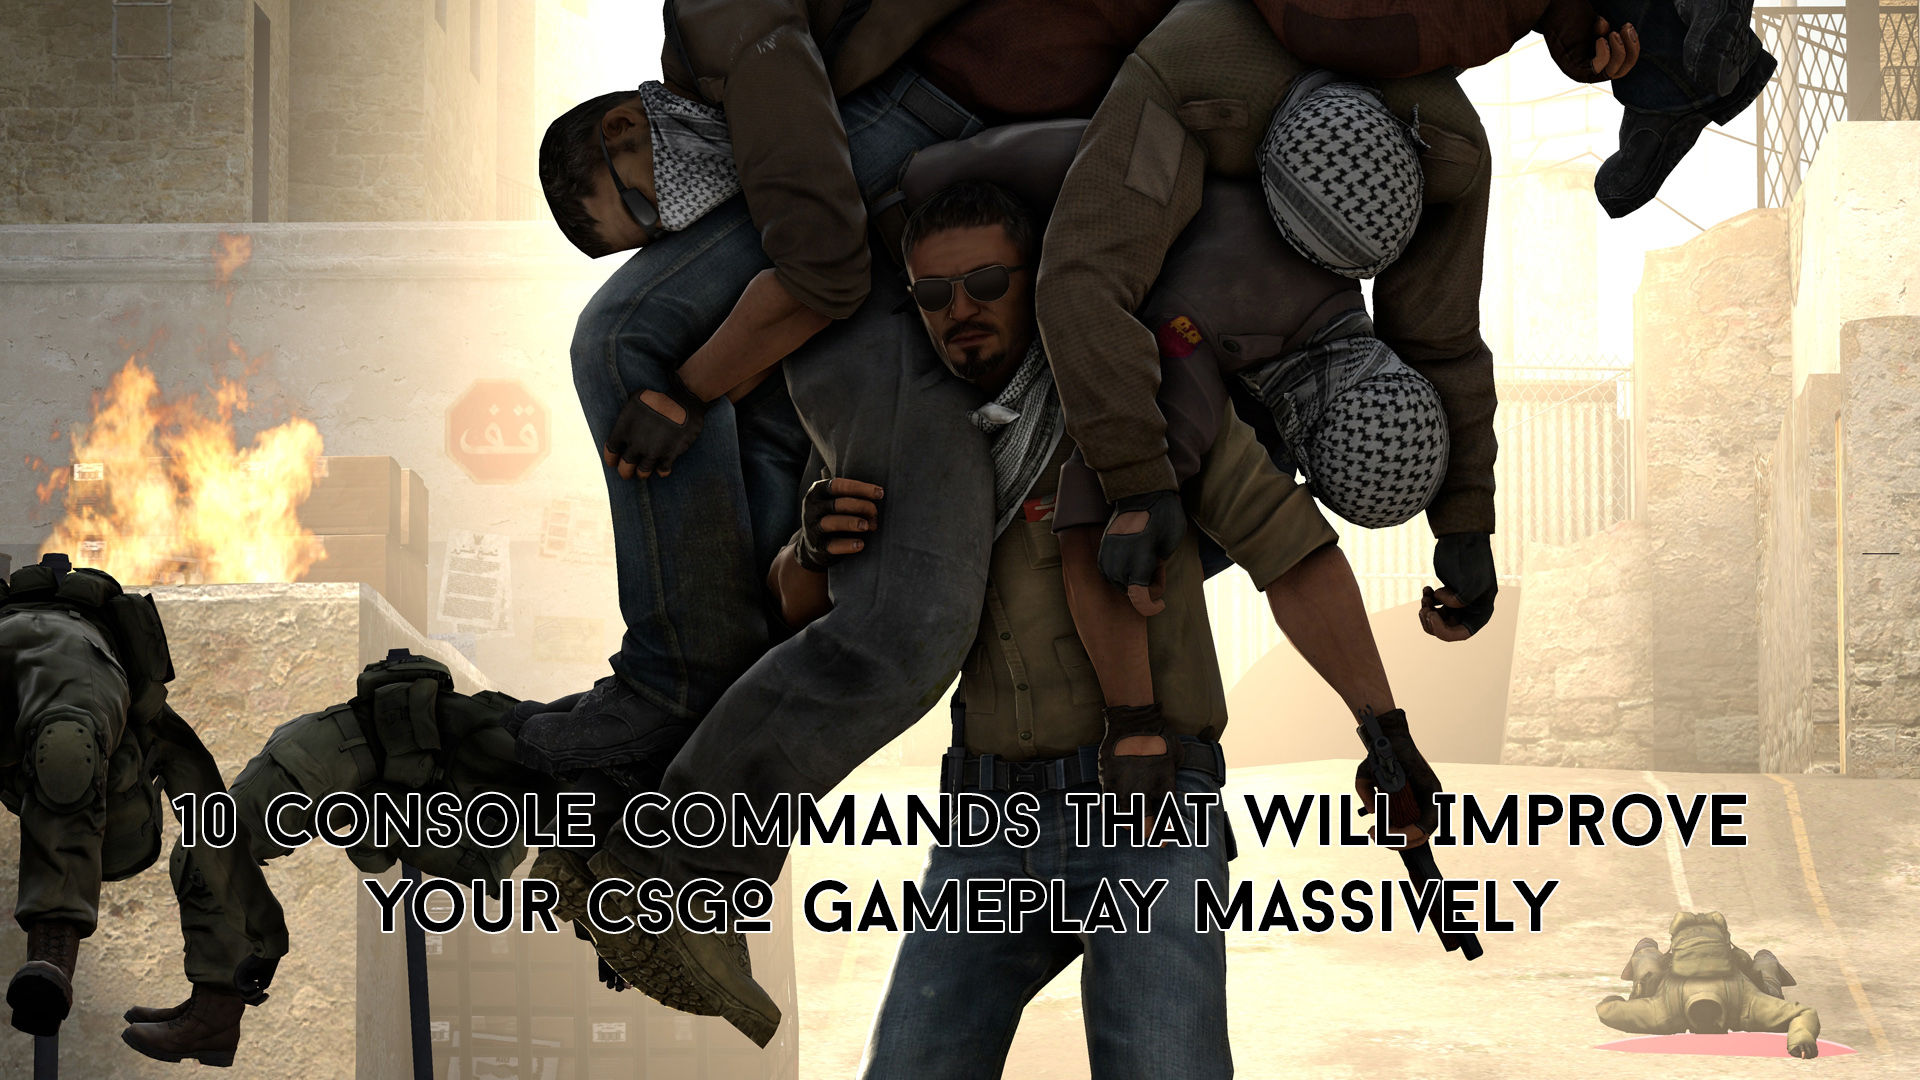 10 Console Commands that will Improve Your CSGO Gameplay Massively